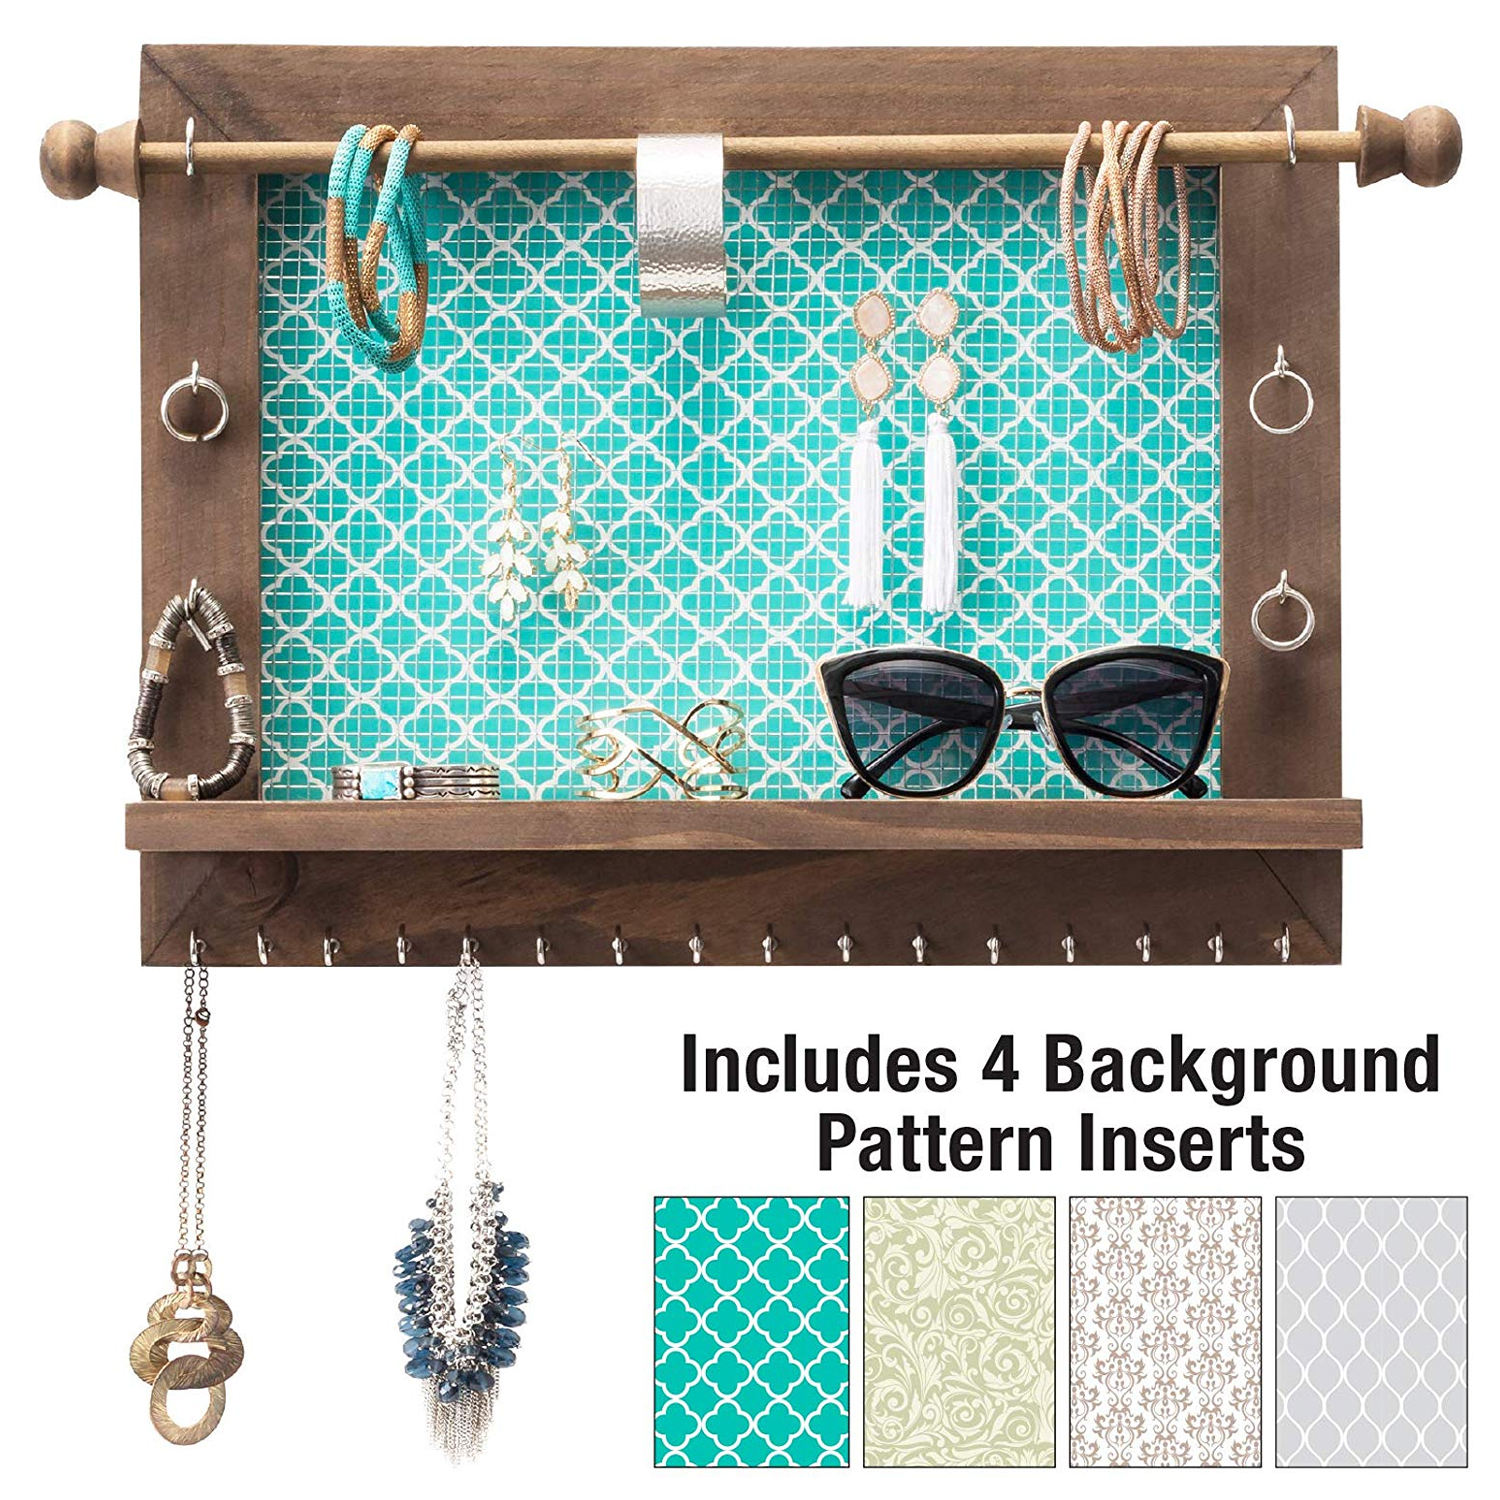 Rustic Wall Mounted Jewelry Organizer Alternative with 5 Background Options Bracelet Holder Earring Organizer